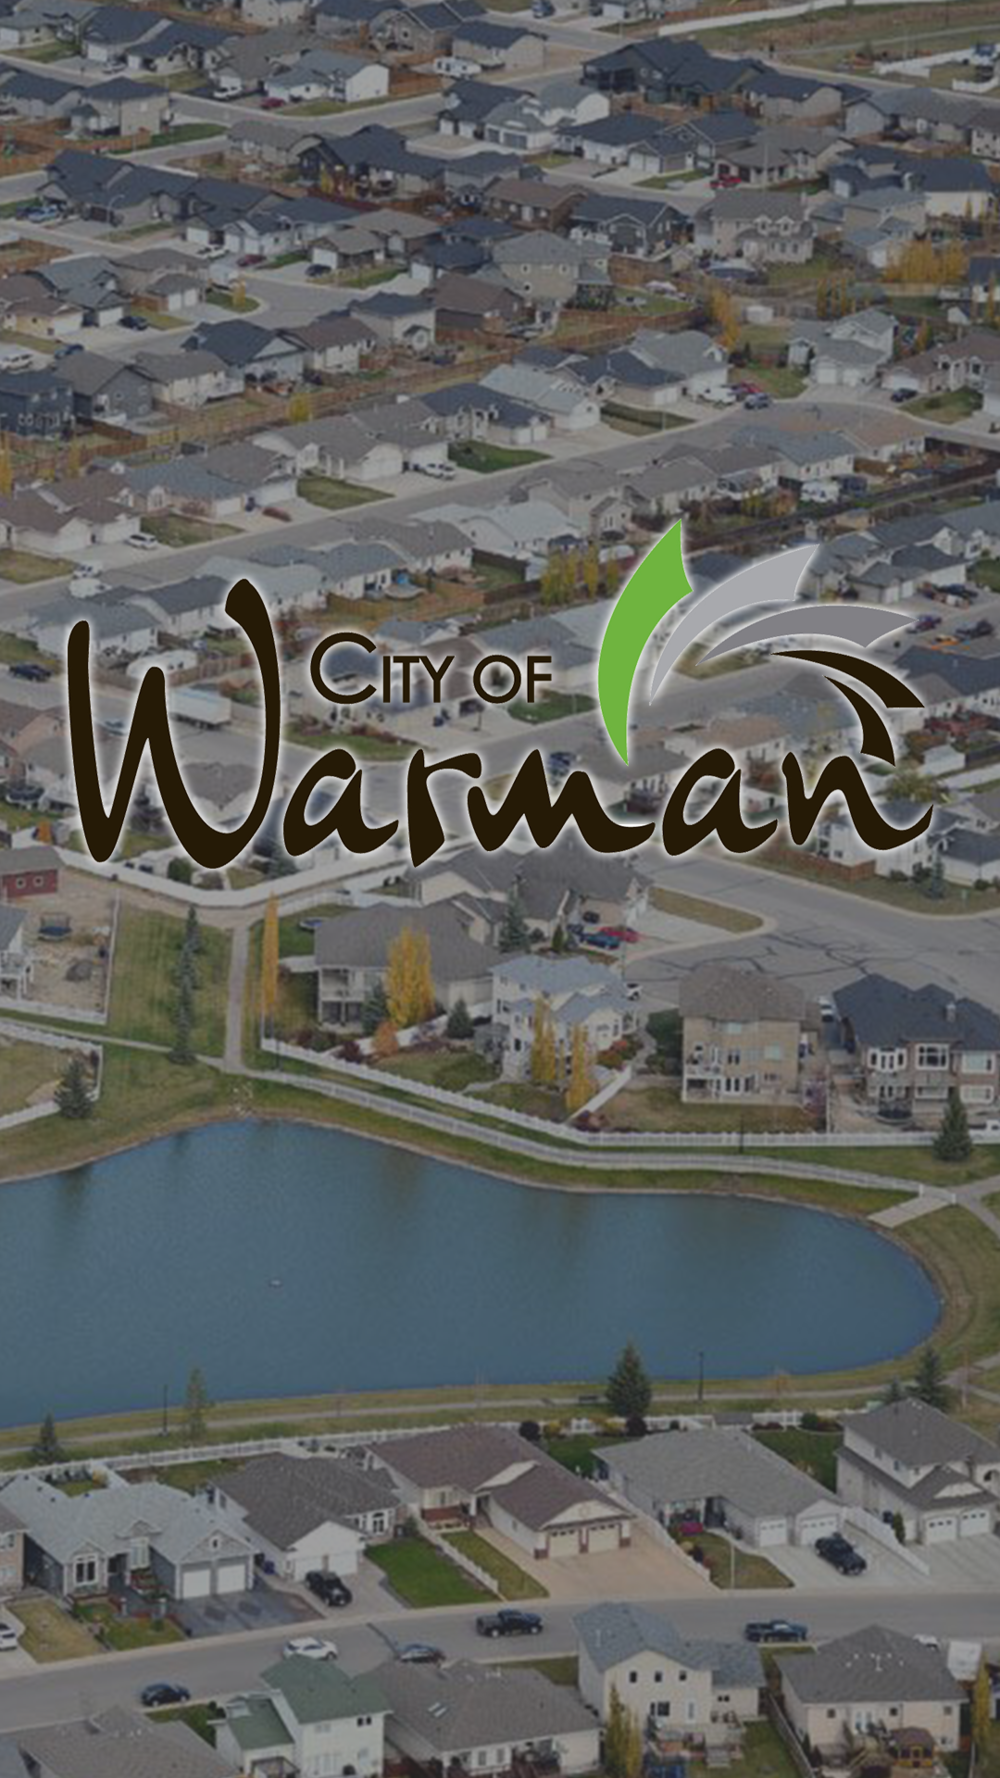 Warman.png